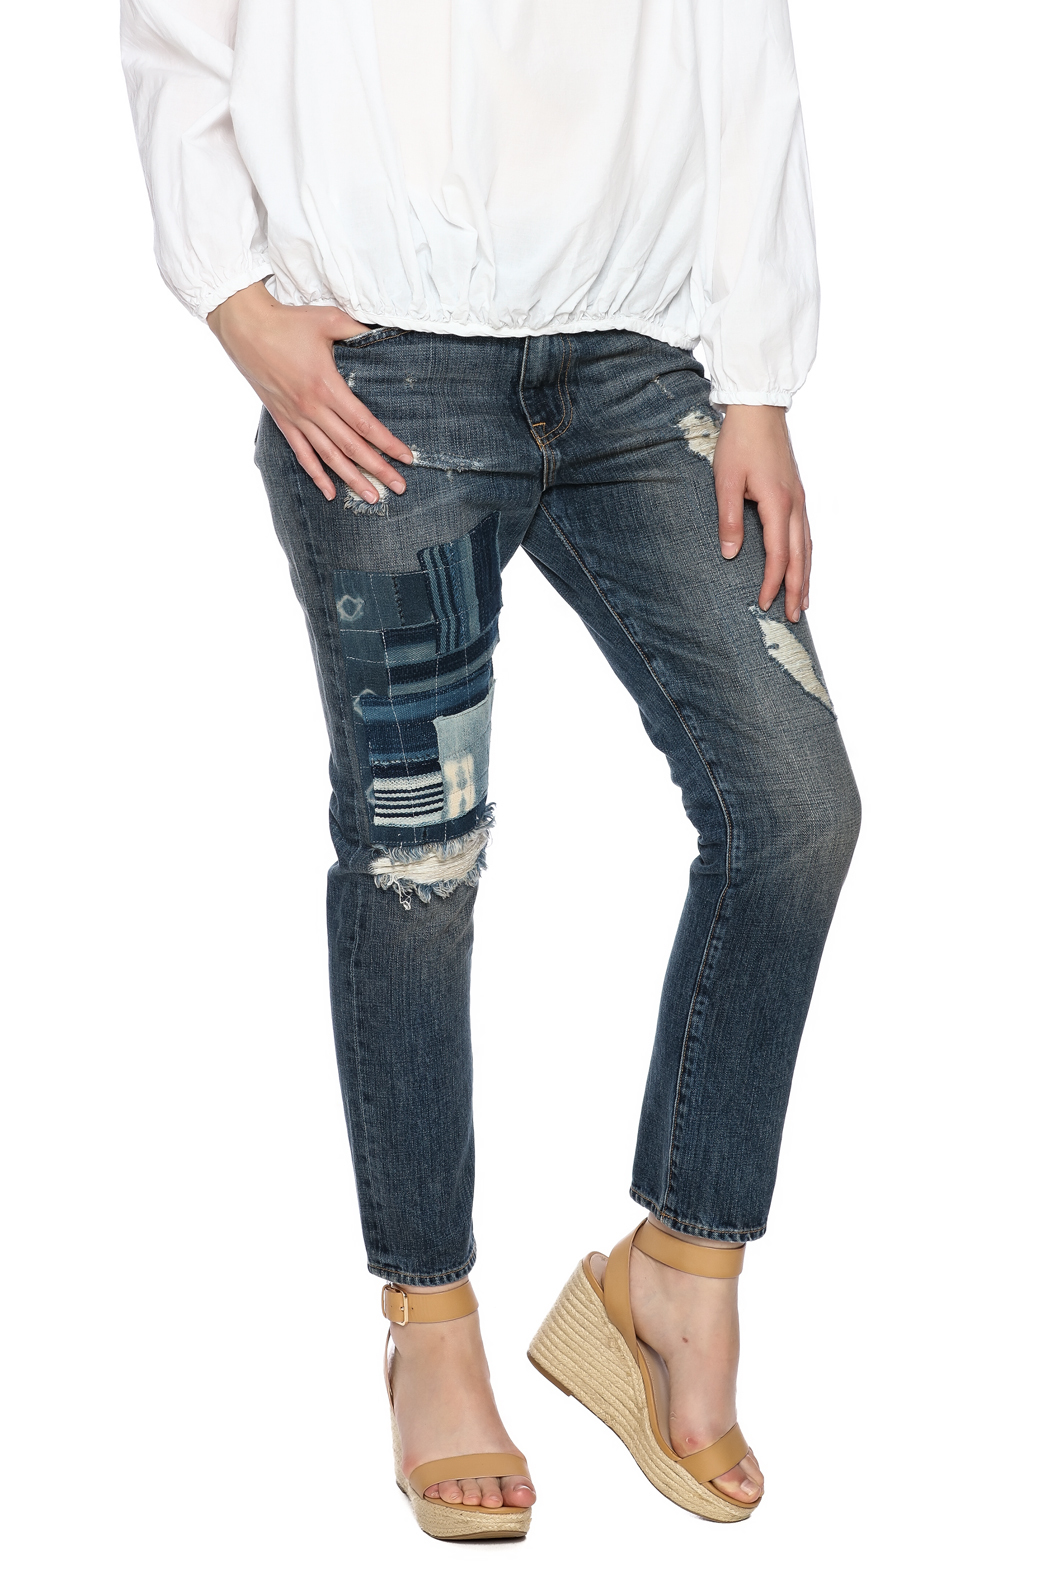 Artisan de Luxe Indigo Patchwork Jean - Front Cropped Image